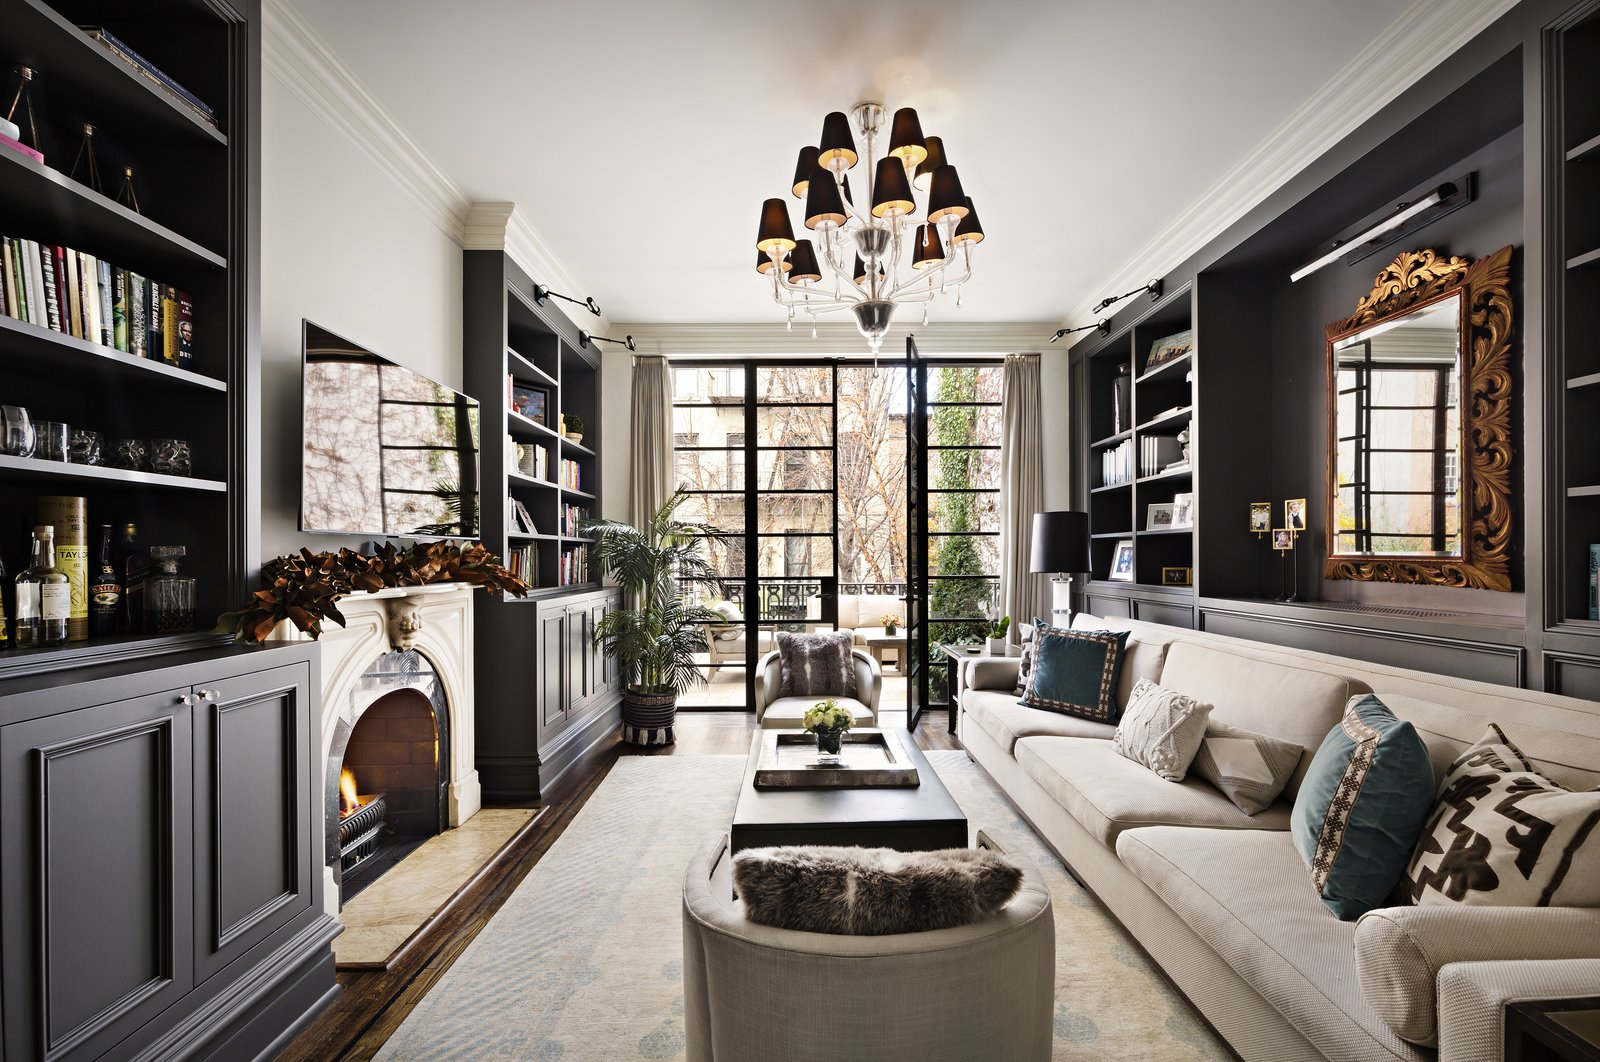 Actor Hilary Swank's Former Greenwich Village Townhouse Hits the Market at $11M